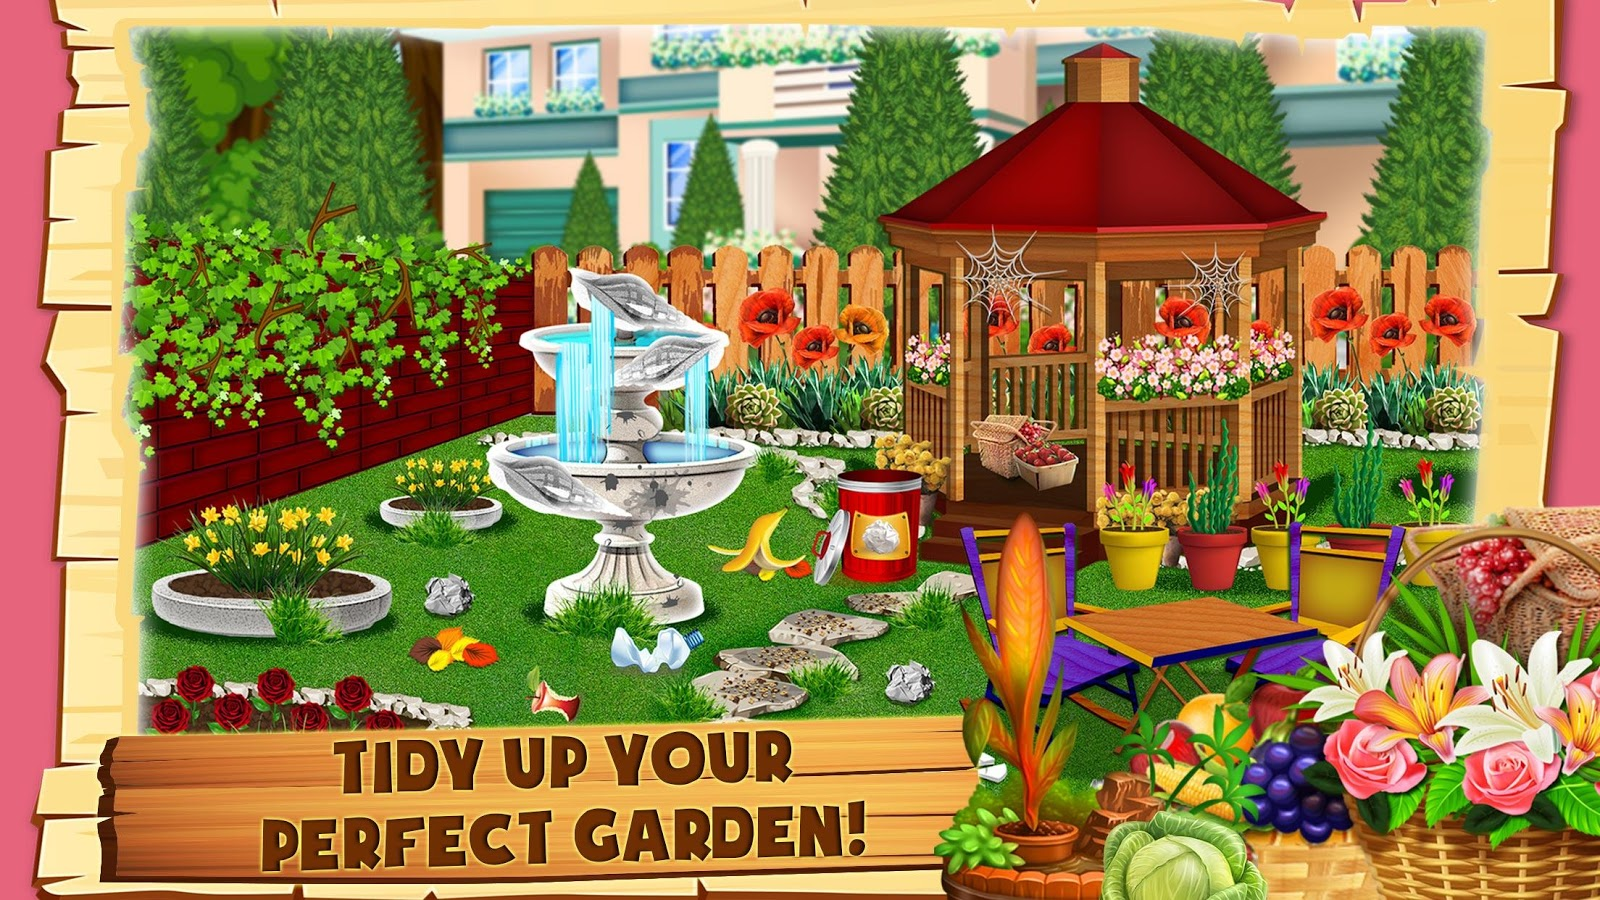 Garden Design Games Collection Enchanting Garden Design Games  Flower Decoration  Android Apps On Google Play Design Inspiration